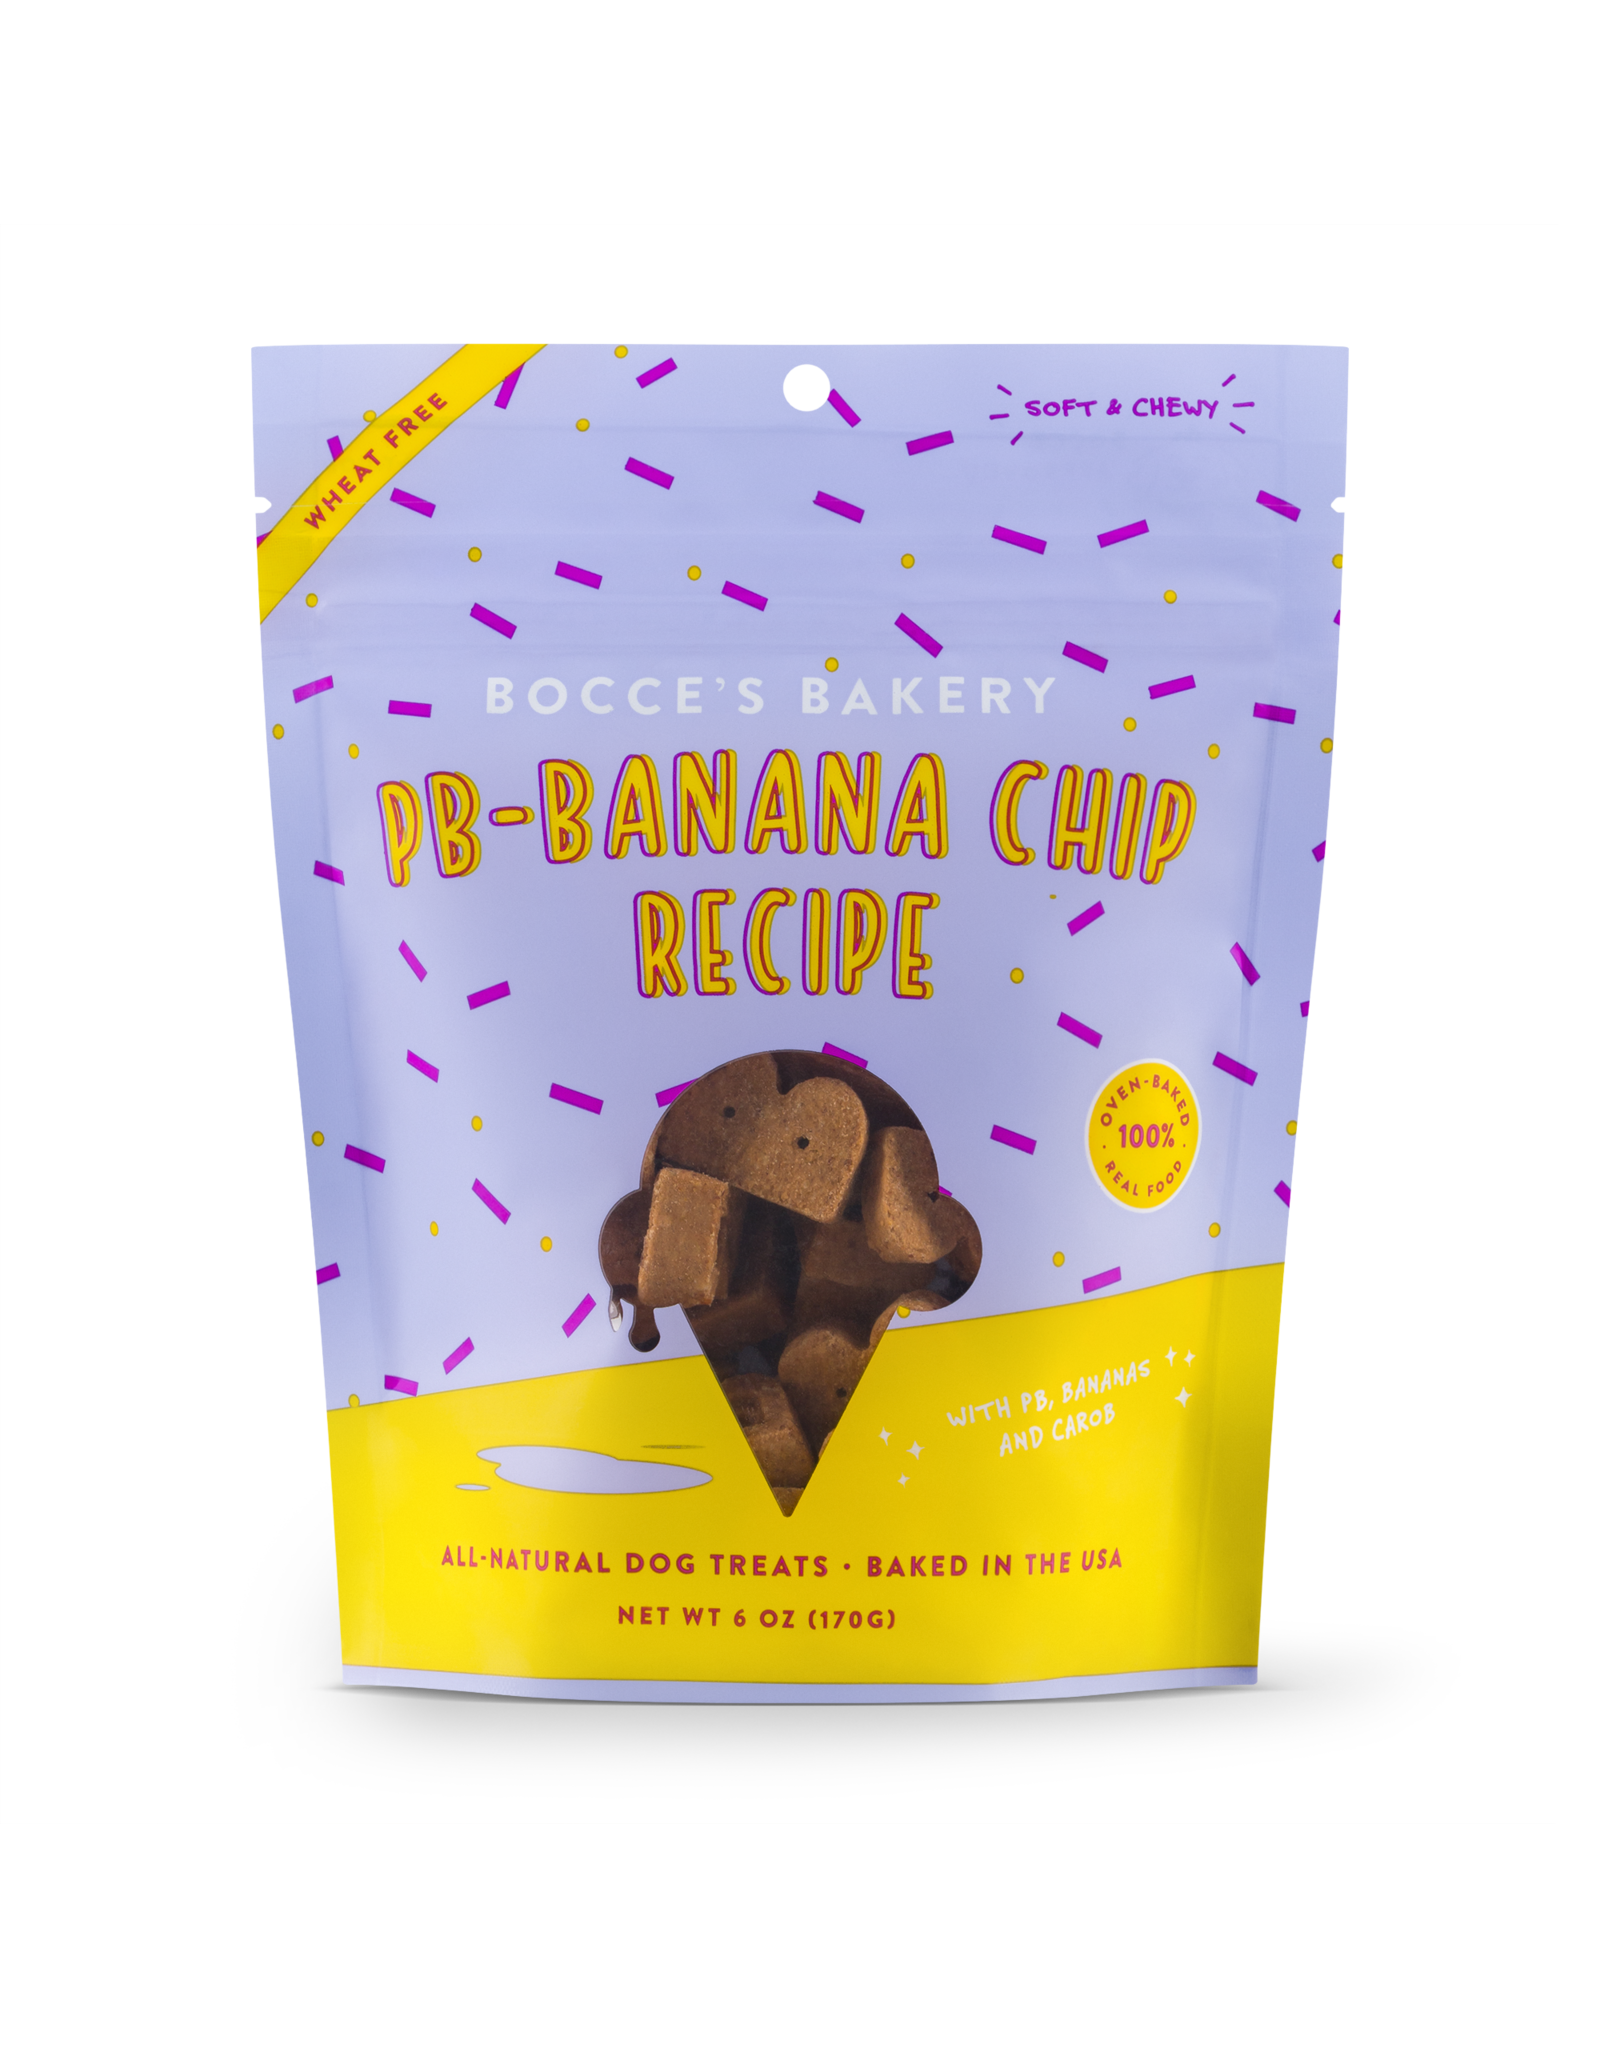 Bocce's Bakery Bocce's Bakery: Soft & Chewy PB Banana Chip, 6 oz